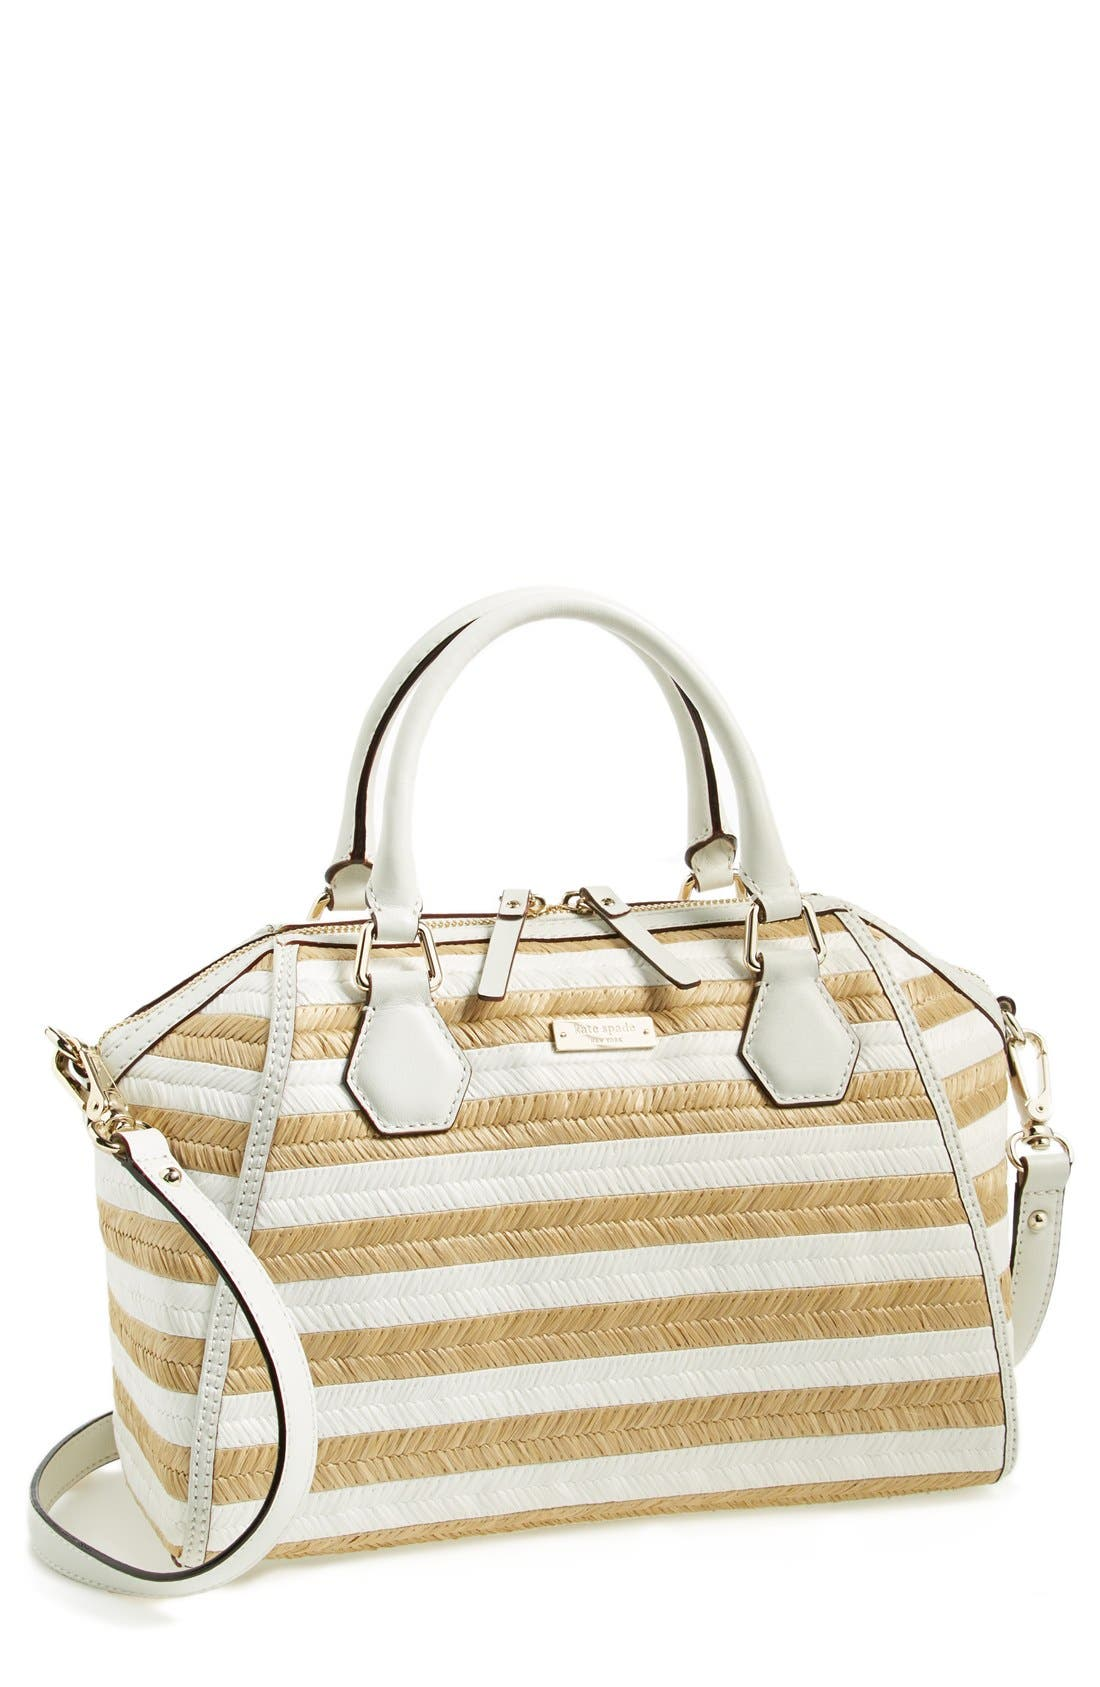 Main Image - kate spade new york 'pippa' straw satchel